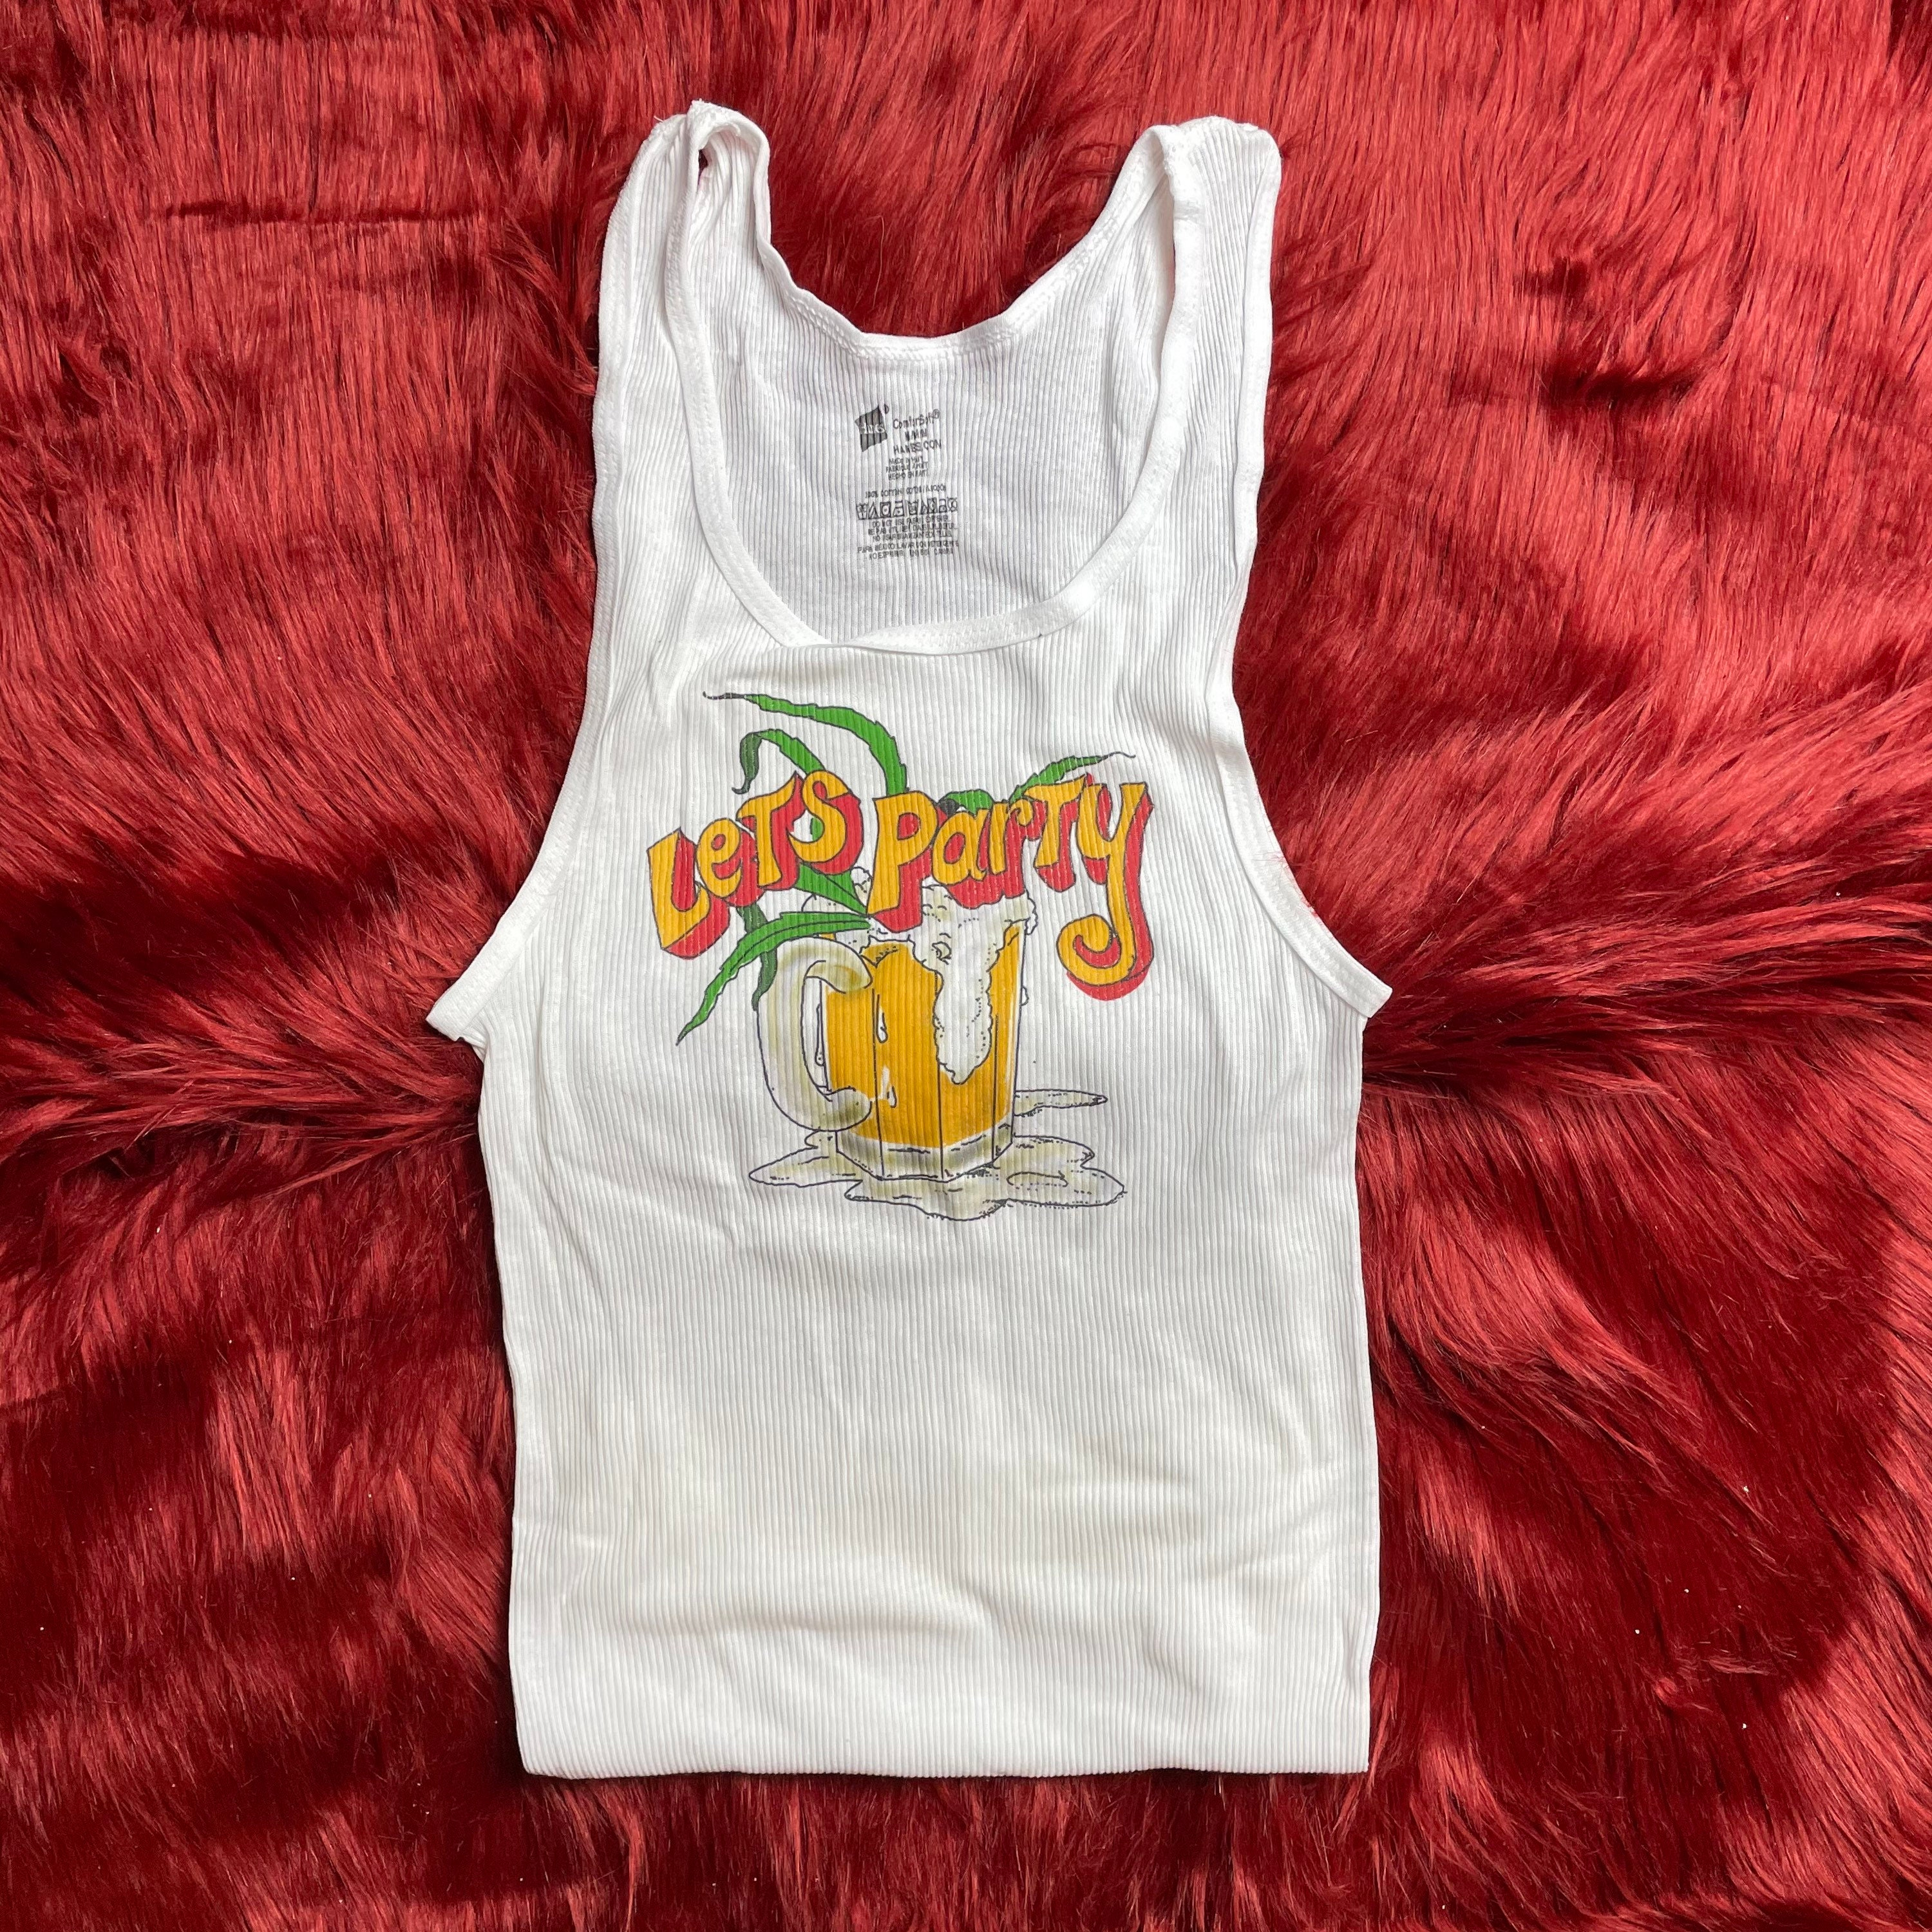 Ribbed Tank with DESTROYER Vintage Inspired Graphic